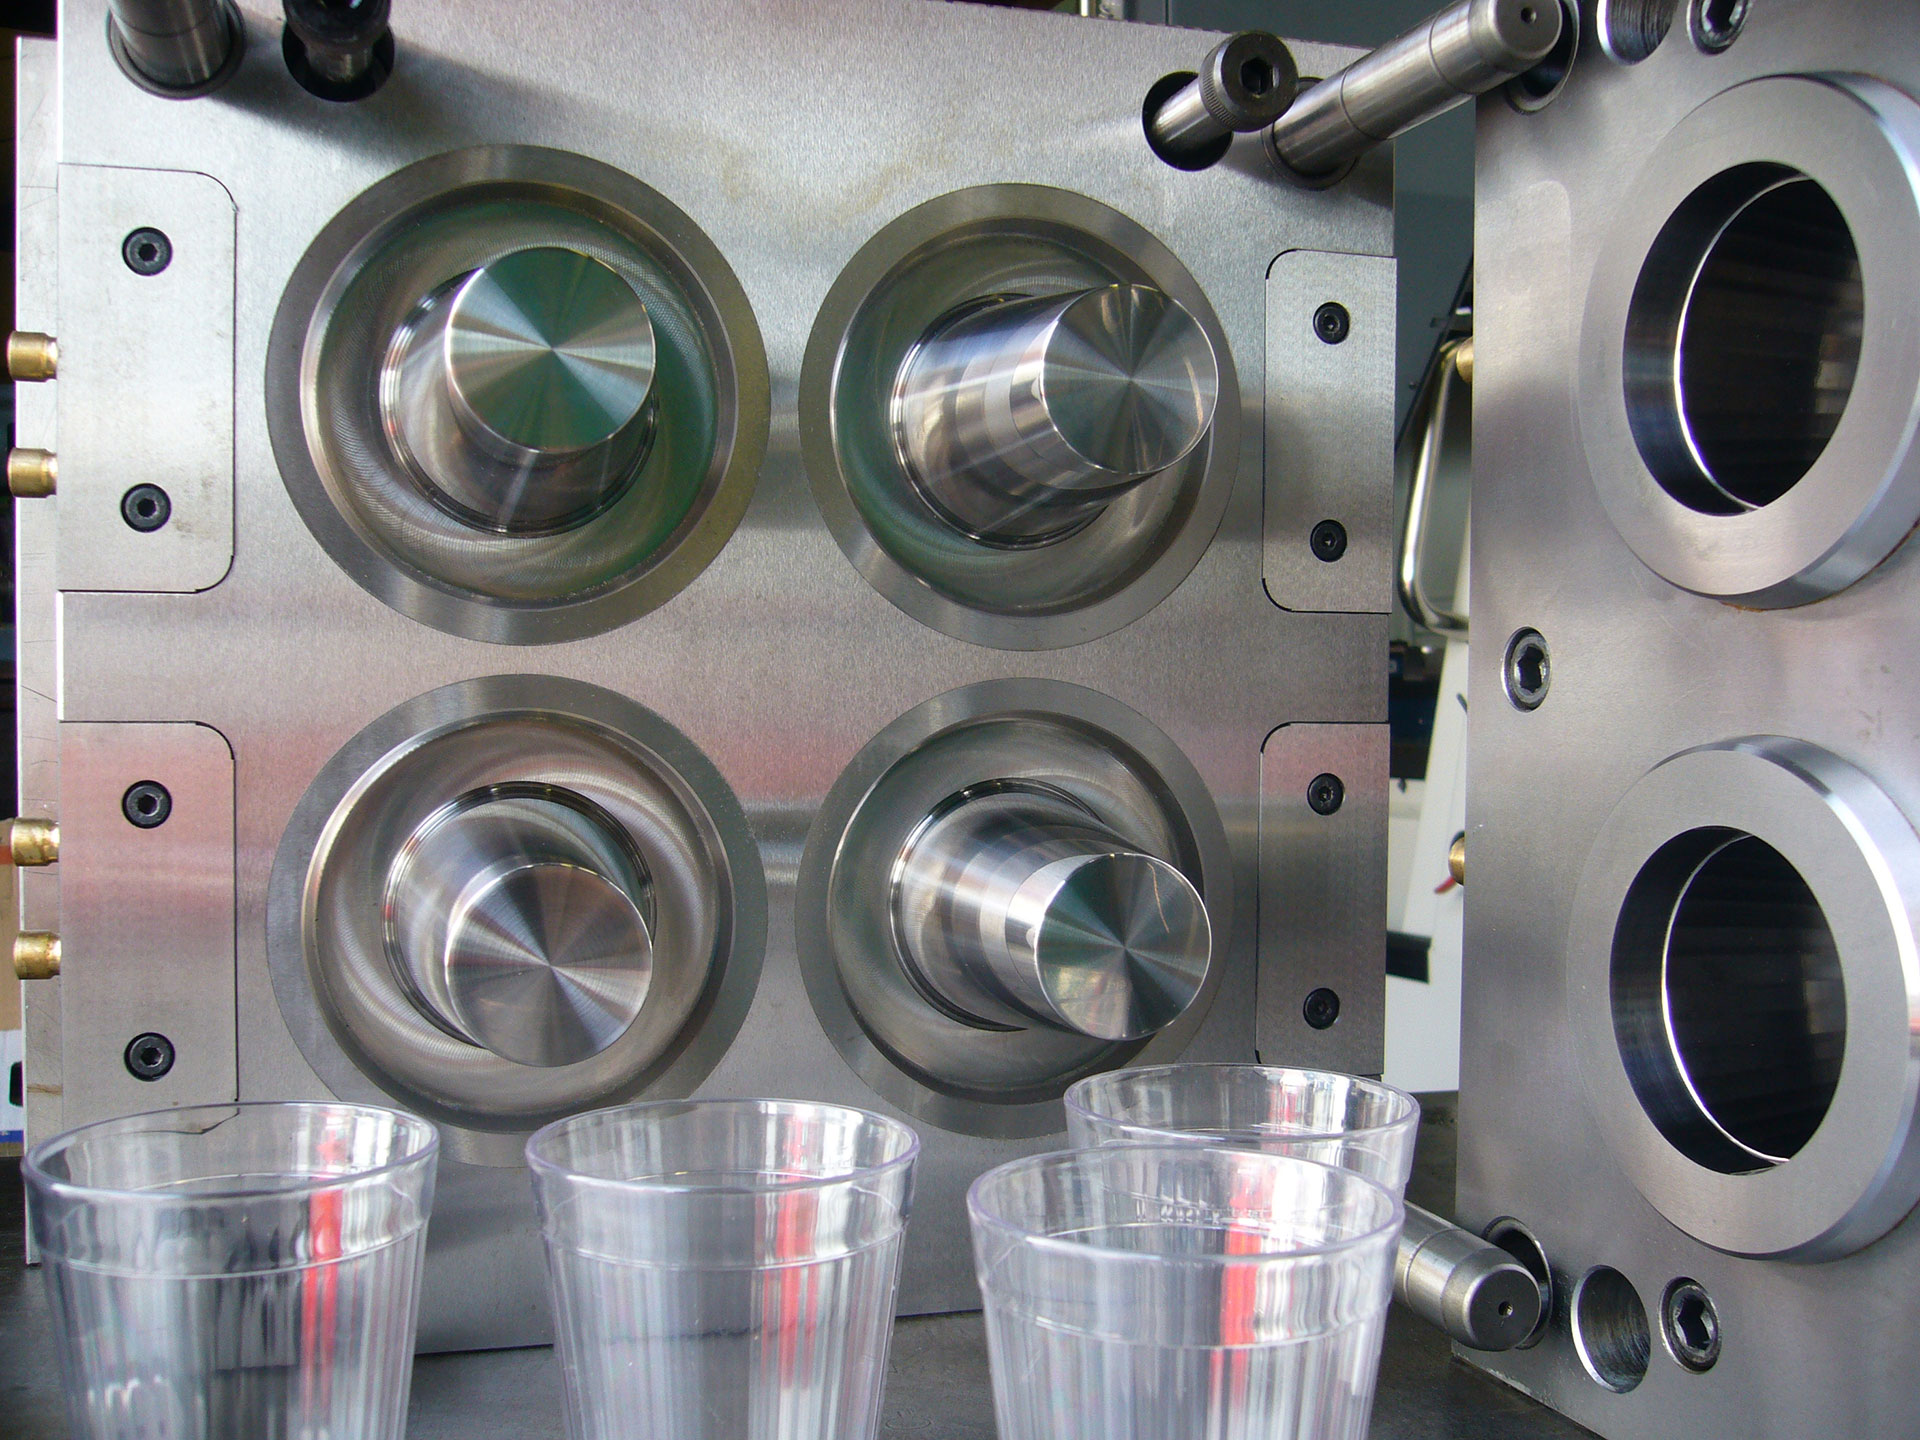 """<p>""""Faulkner Moulds has been our preferred injection mould tooling supplier for many years and we have developed a close working relationship. We have tools from Faulkner Moulds that have been in operation forup to 15years and are still producing excellent products. As a manufacturer of quality tableware, our products must be safe, hygienic and hardwearing, with a perfect finish. Faulkner Moulds consistently design and produce immaculate, high quality tooling that moulds reliably and is built to last.""""</p>"""